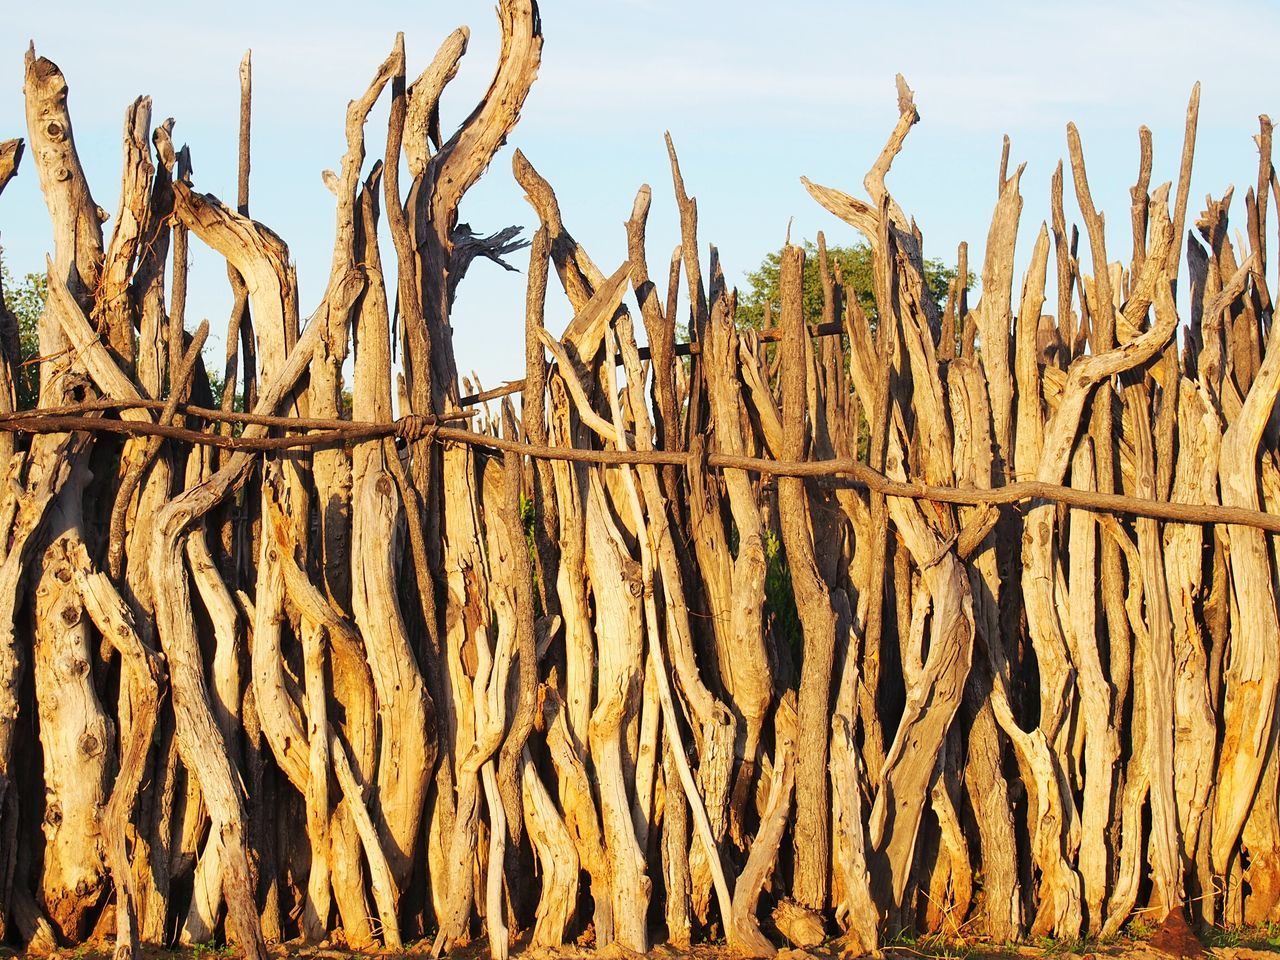 ... Enjoying Nature Home High Wooden Fence Nature Still Life Sun Stay Out Meumbo Ovamboland Namibia Rural Namibia I Love Nam